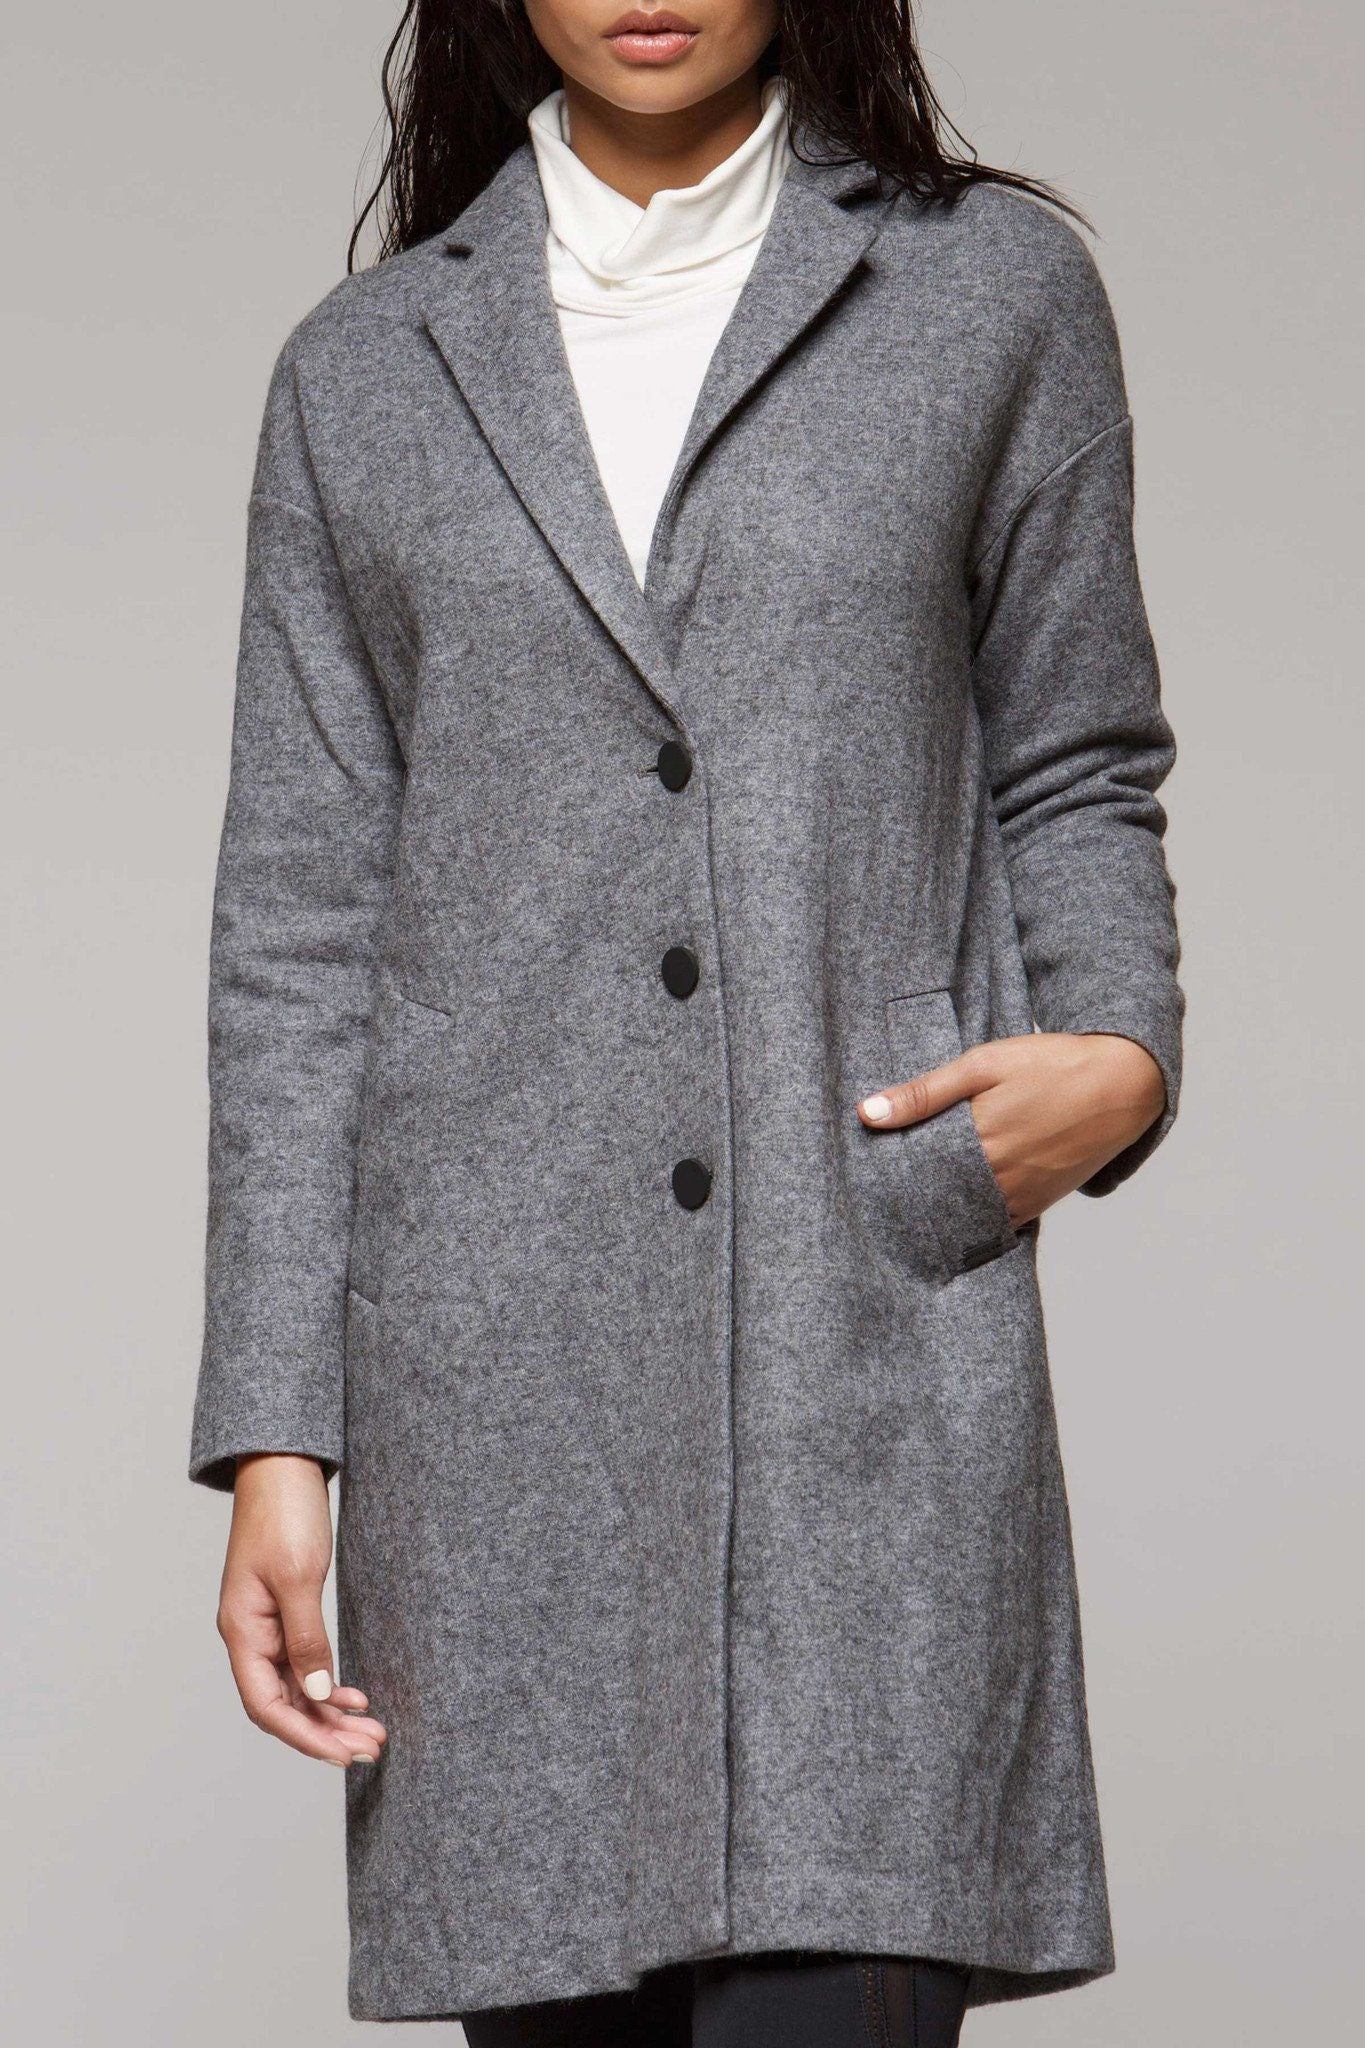 Cora Light Coat